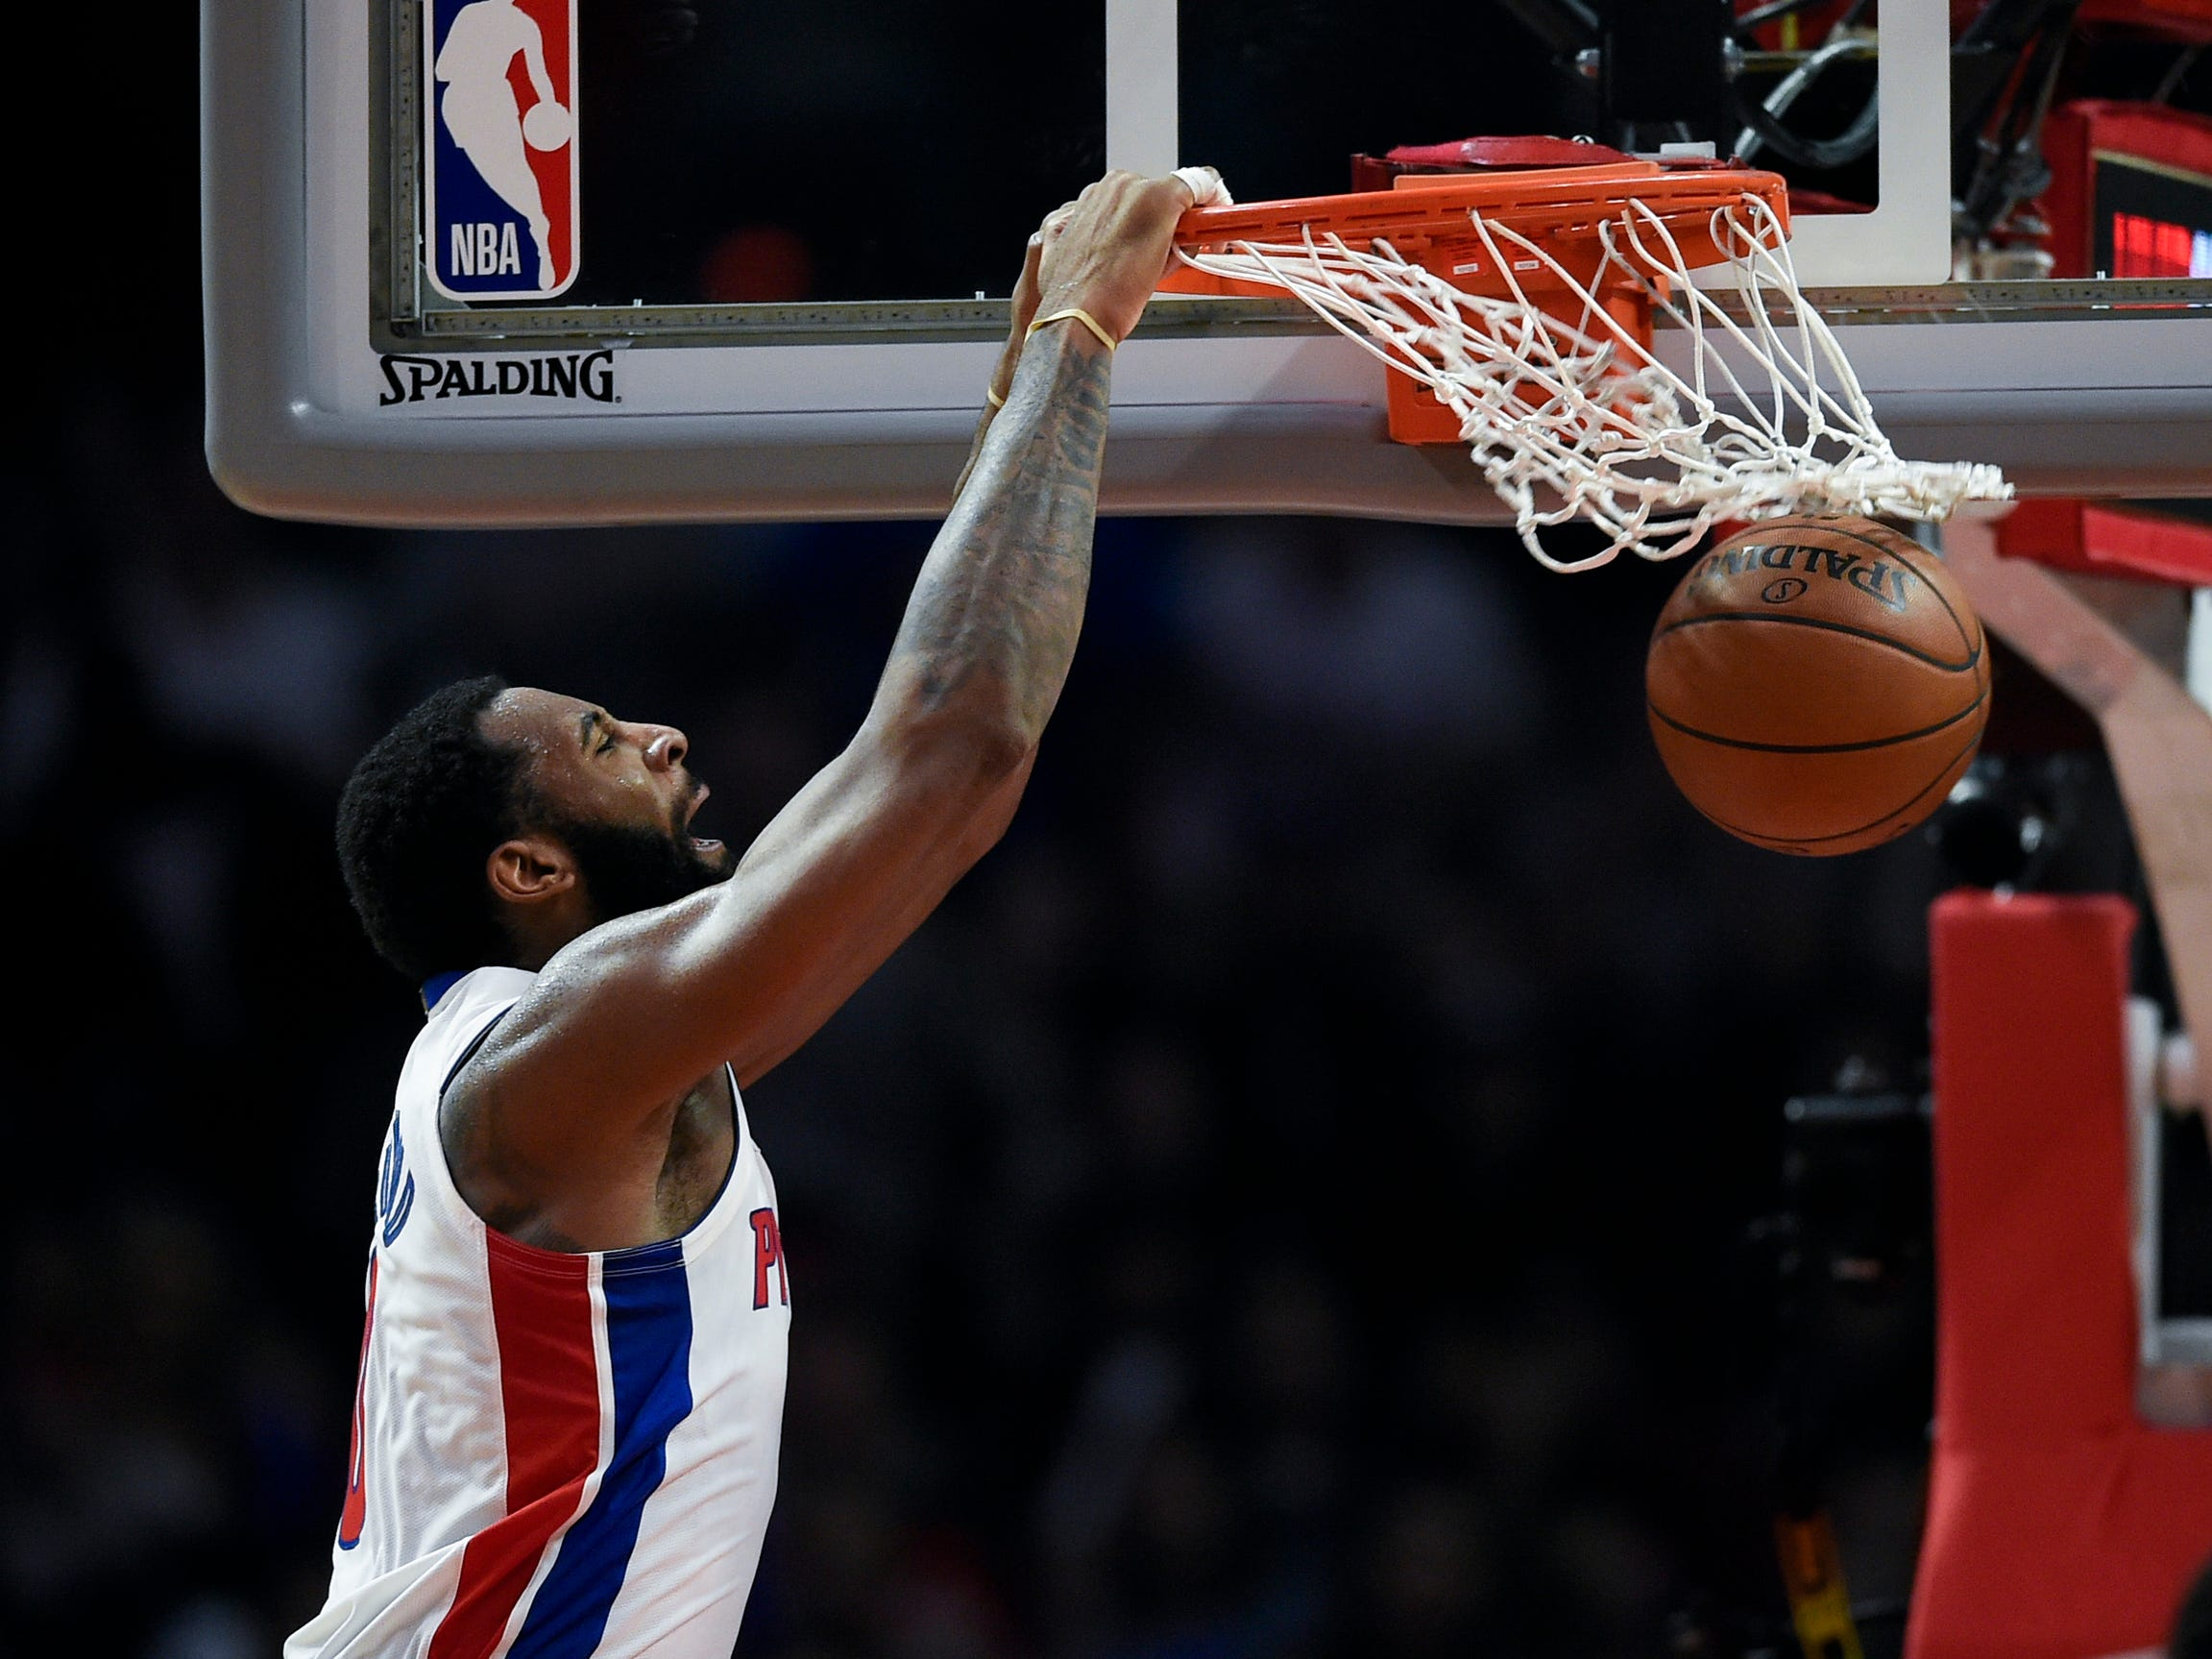 Detroit Pistons center Andre Drummond dunks during the fourth quarter against the Los Angeles Clippers at Staples Center, Saturday, Jan. 12, 2019, in Los Angeles.